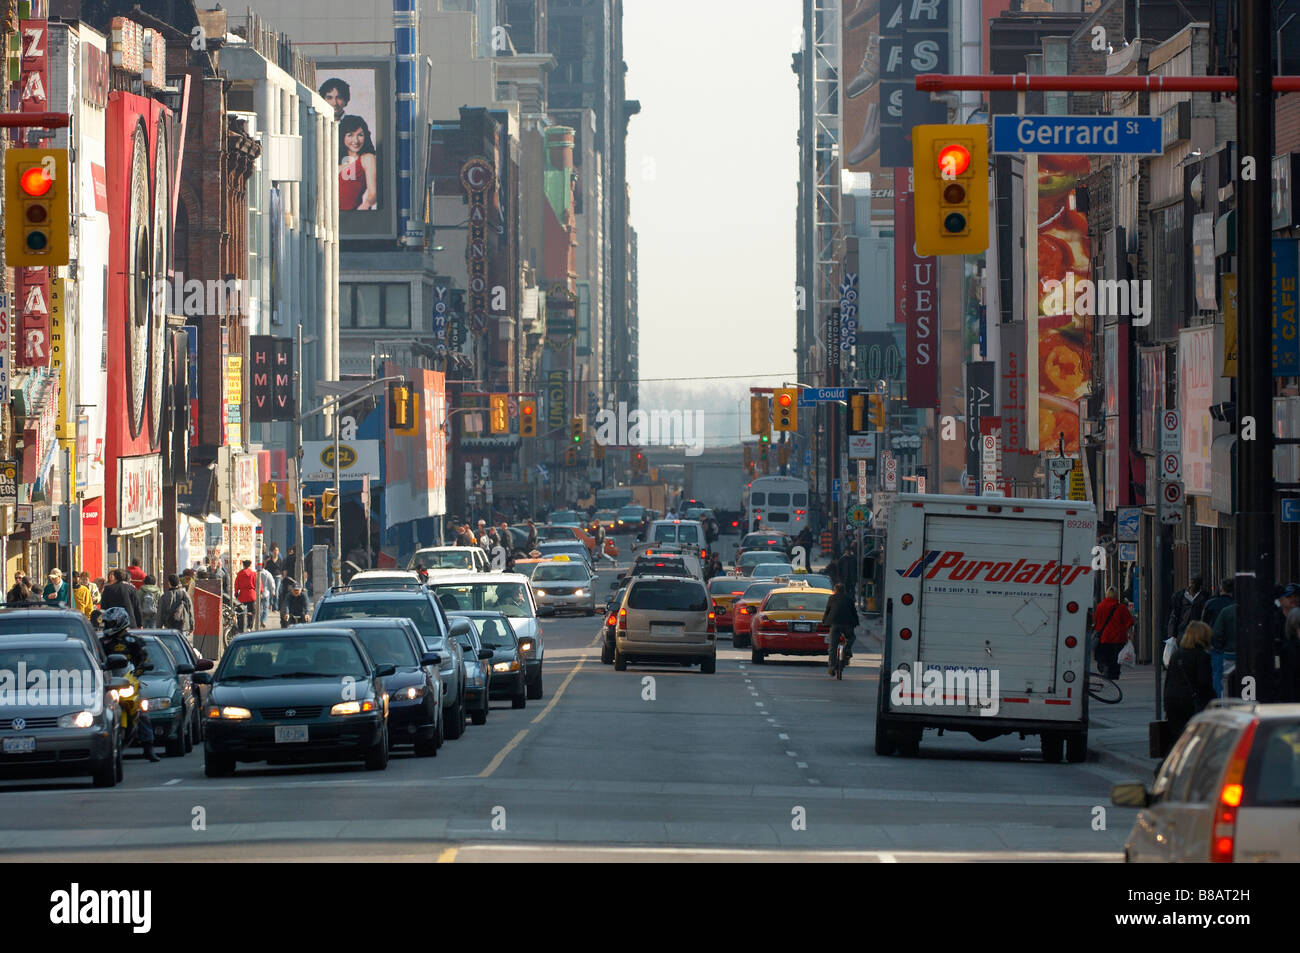 Busy Yonge St   Gerrard St  Intersection, Toronto,Ontario - Stock Image